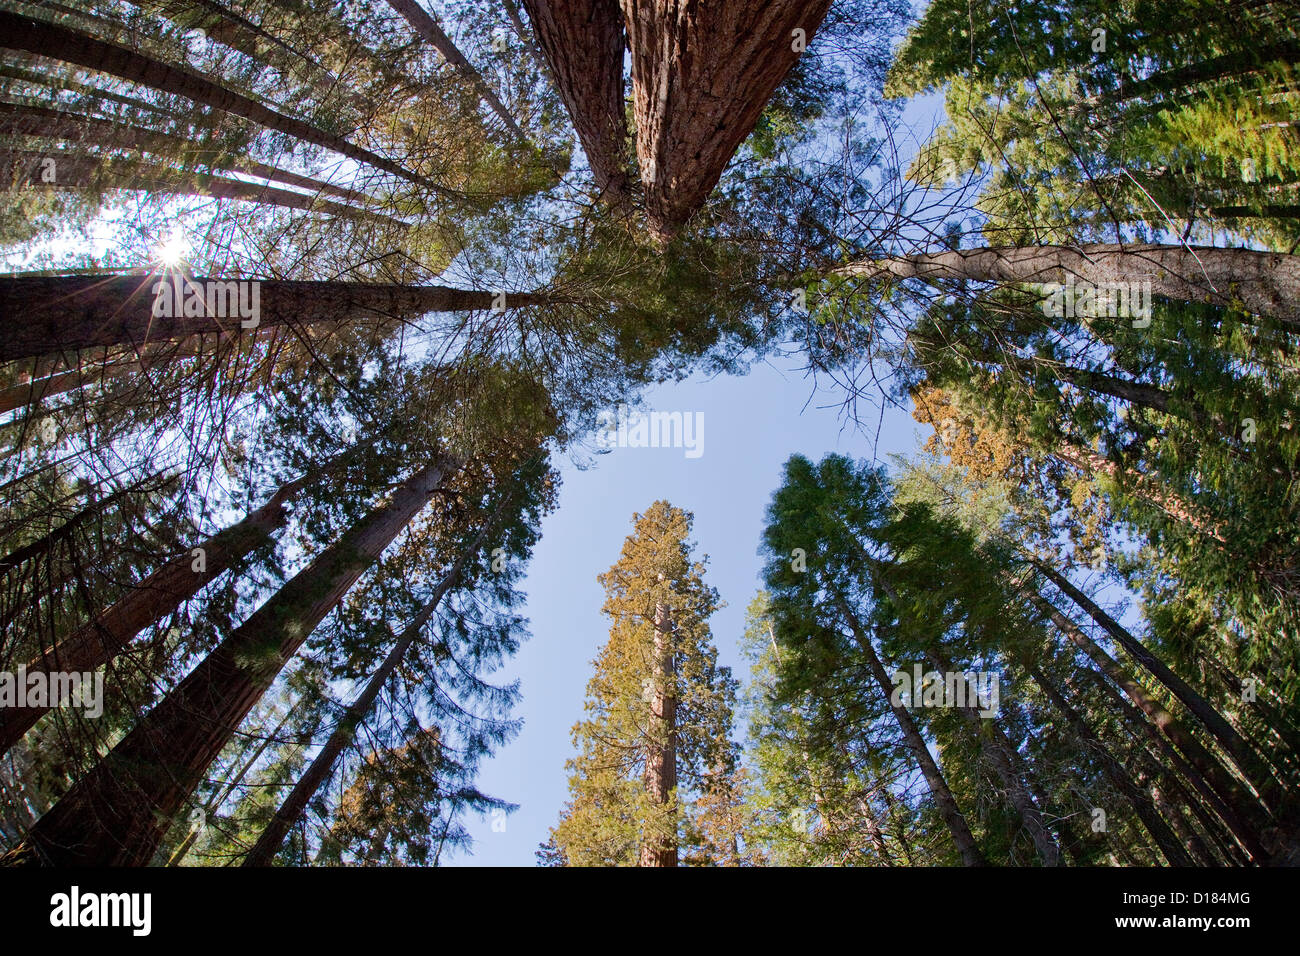 Looking up towards the tops of Sequoia trees at Yosemite National Park. - Stock Image